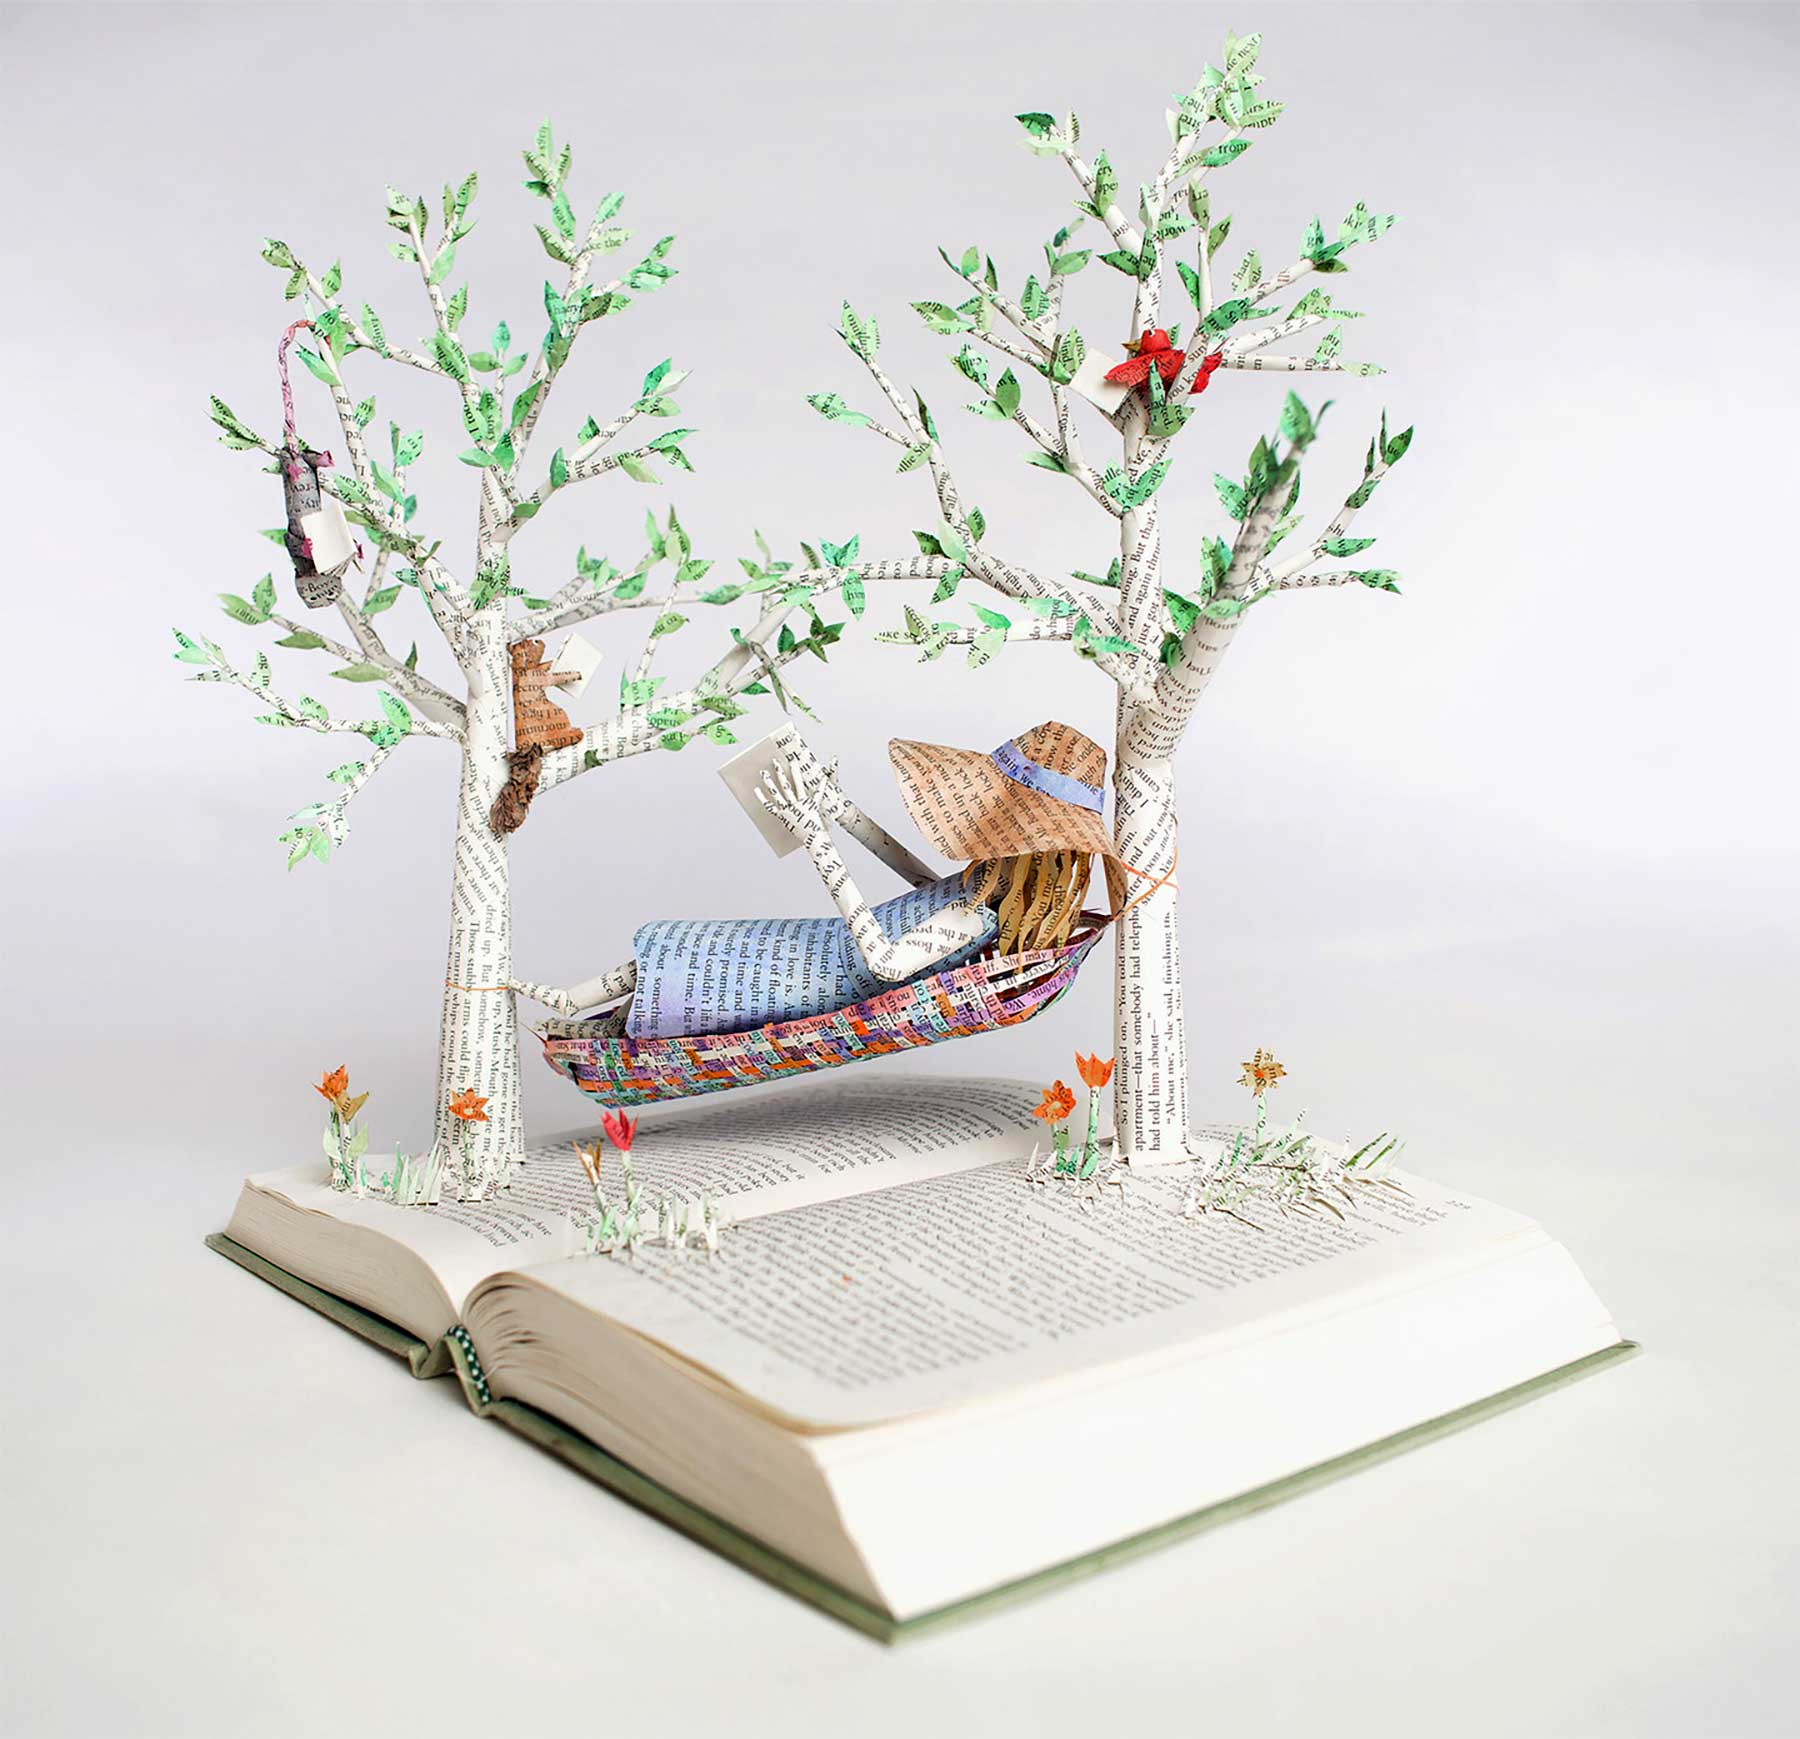 Buchseiten-Dioramen von Bethany Bickley Bethany-Bickley-book-sculptures_02